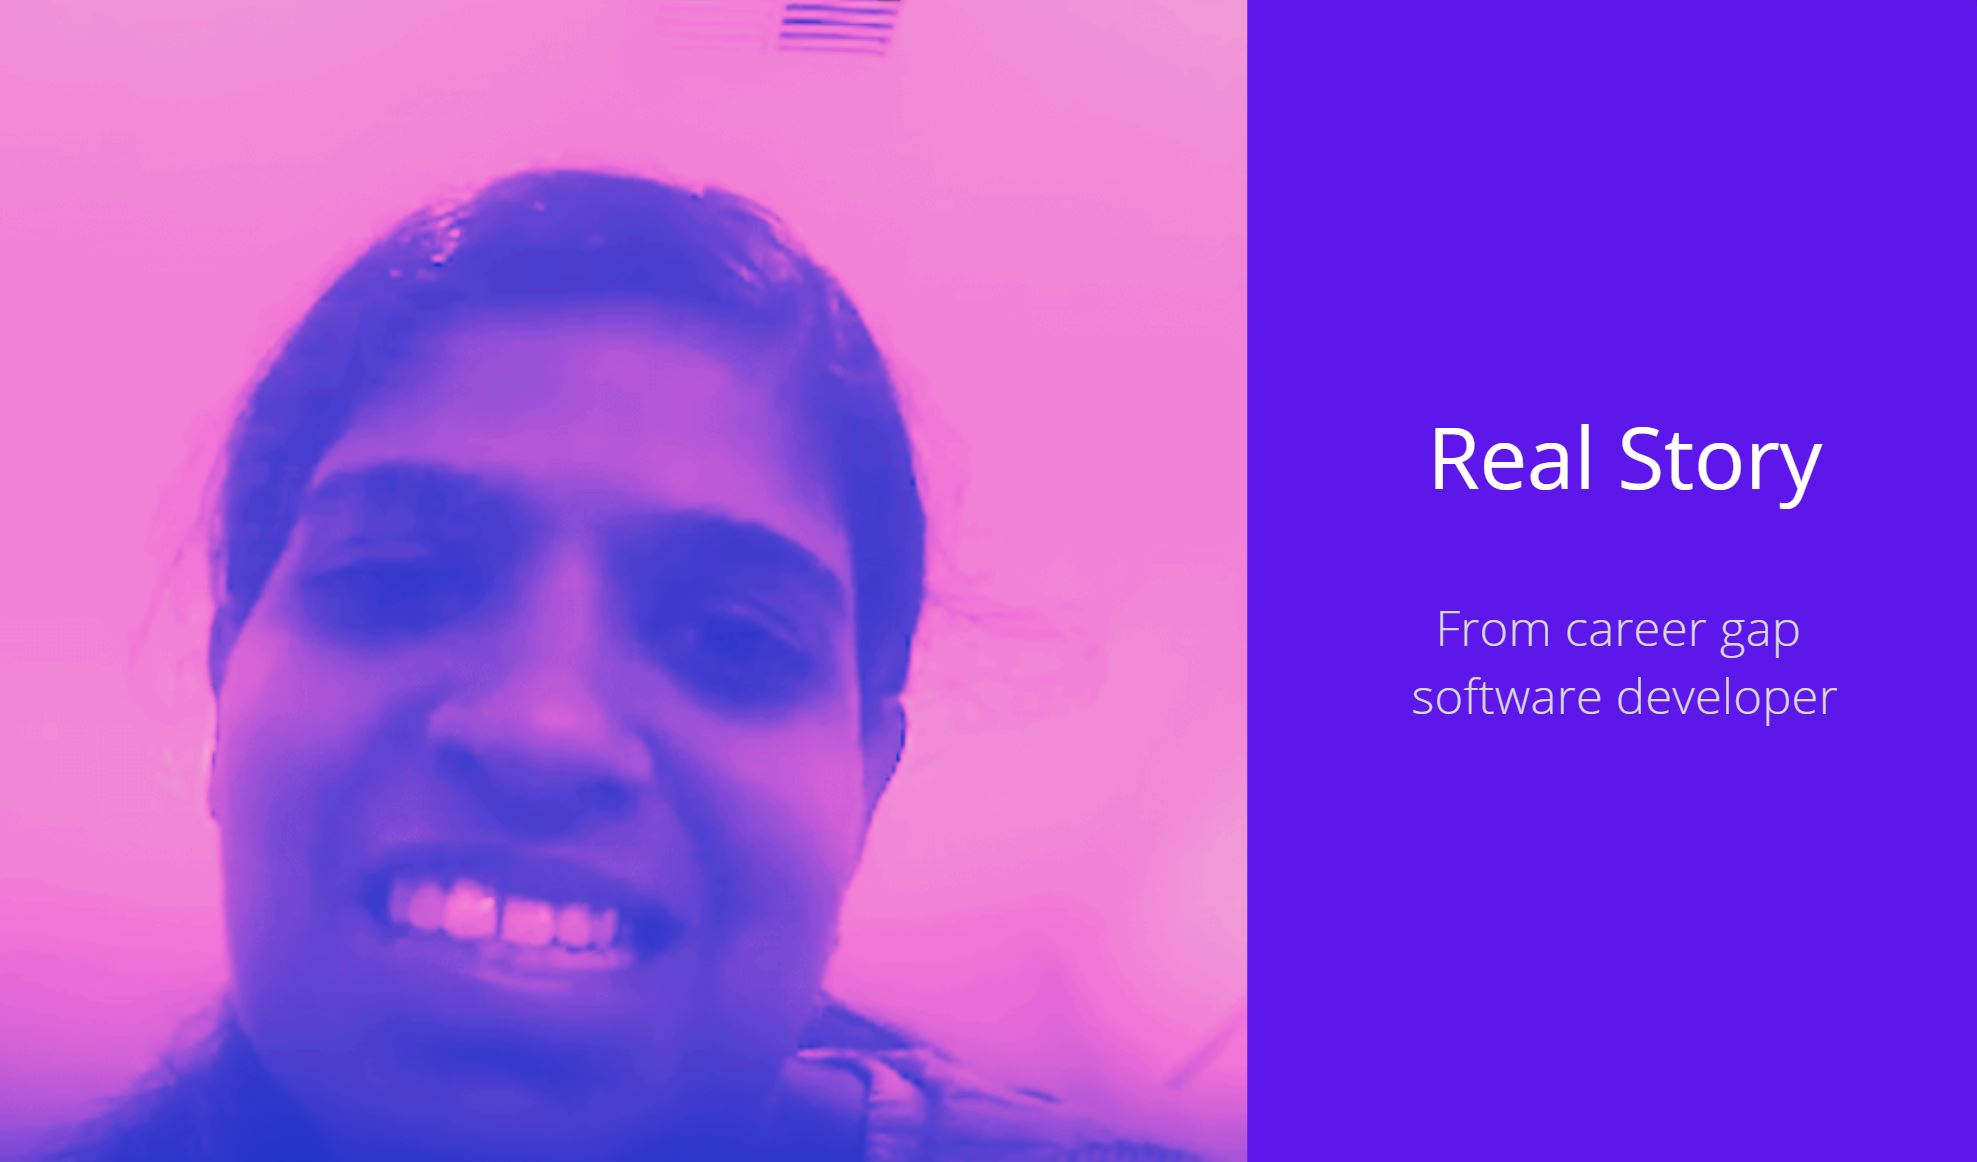 We helped Veena bridge her career gap of 1.5 years and get back into the working world as a .NET DEVELOPER